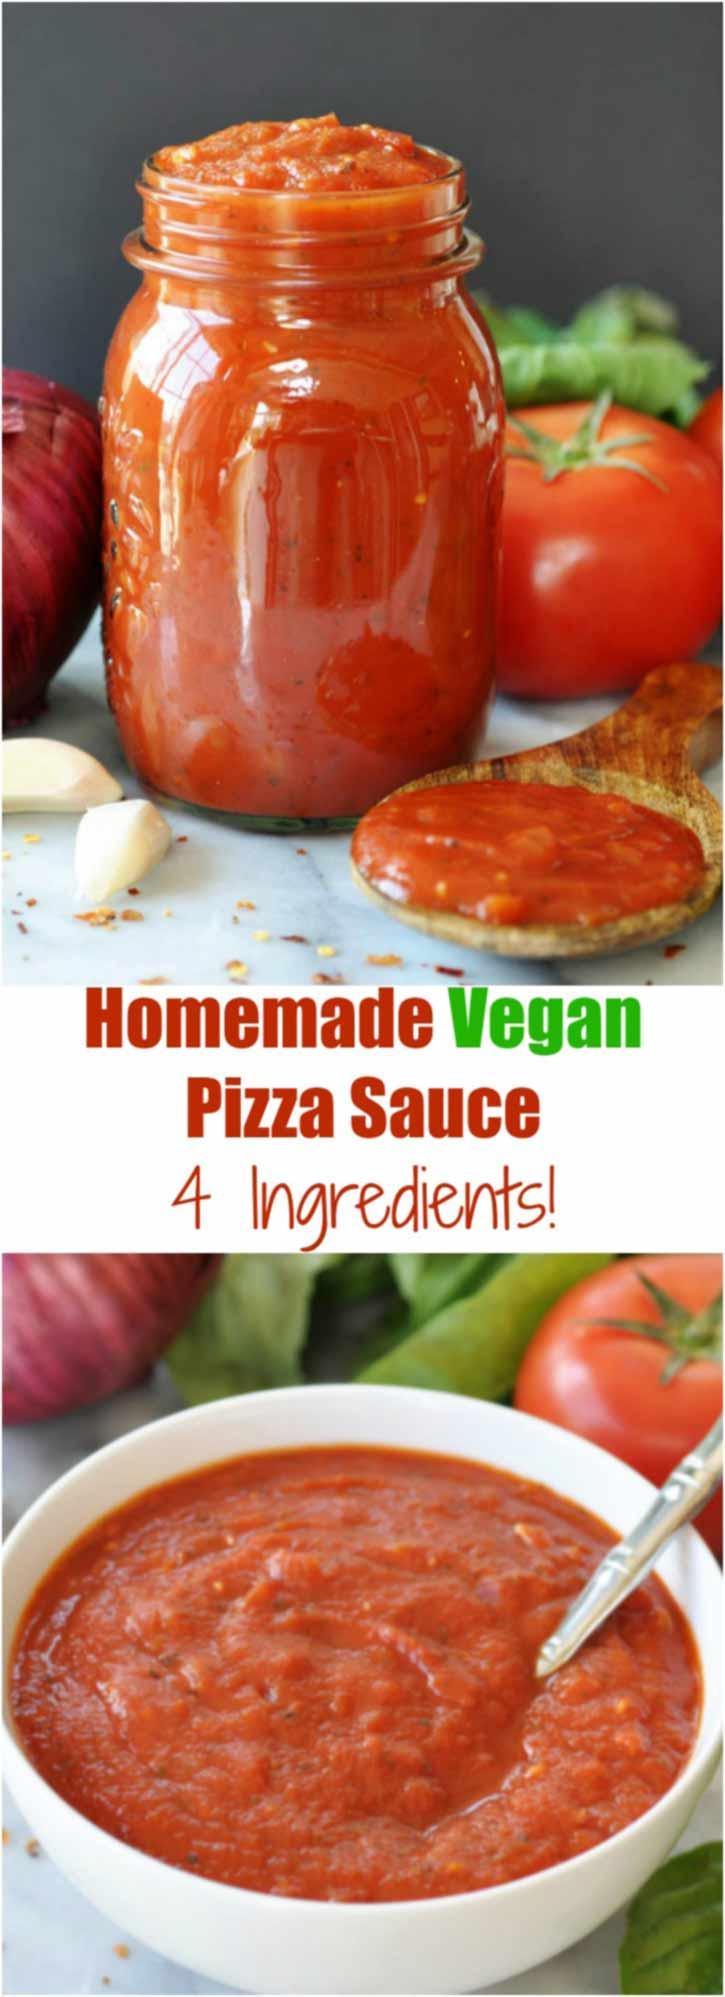 Healthy Pizza Sauce Recipe  4 Ingre nt Homemade Vegan Pizza Sauce Veganosity